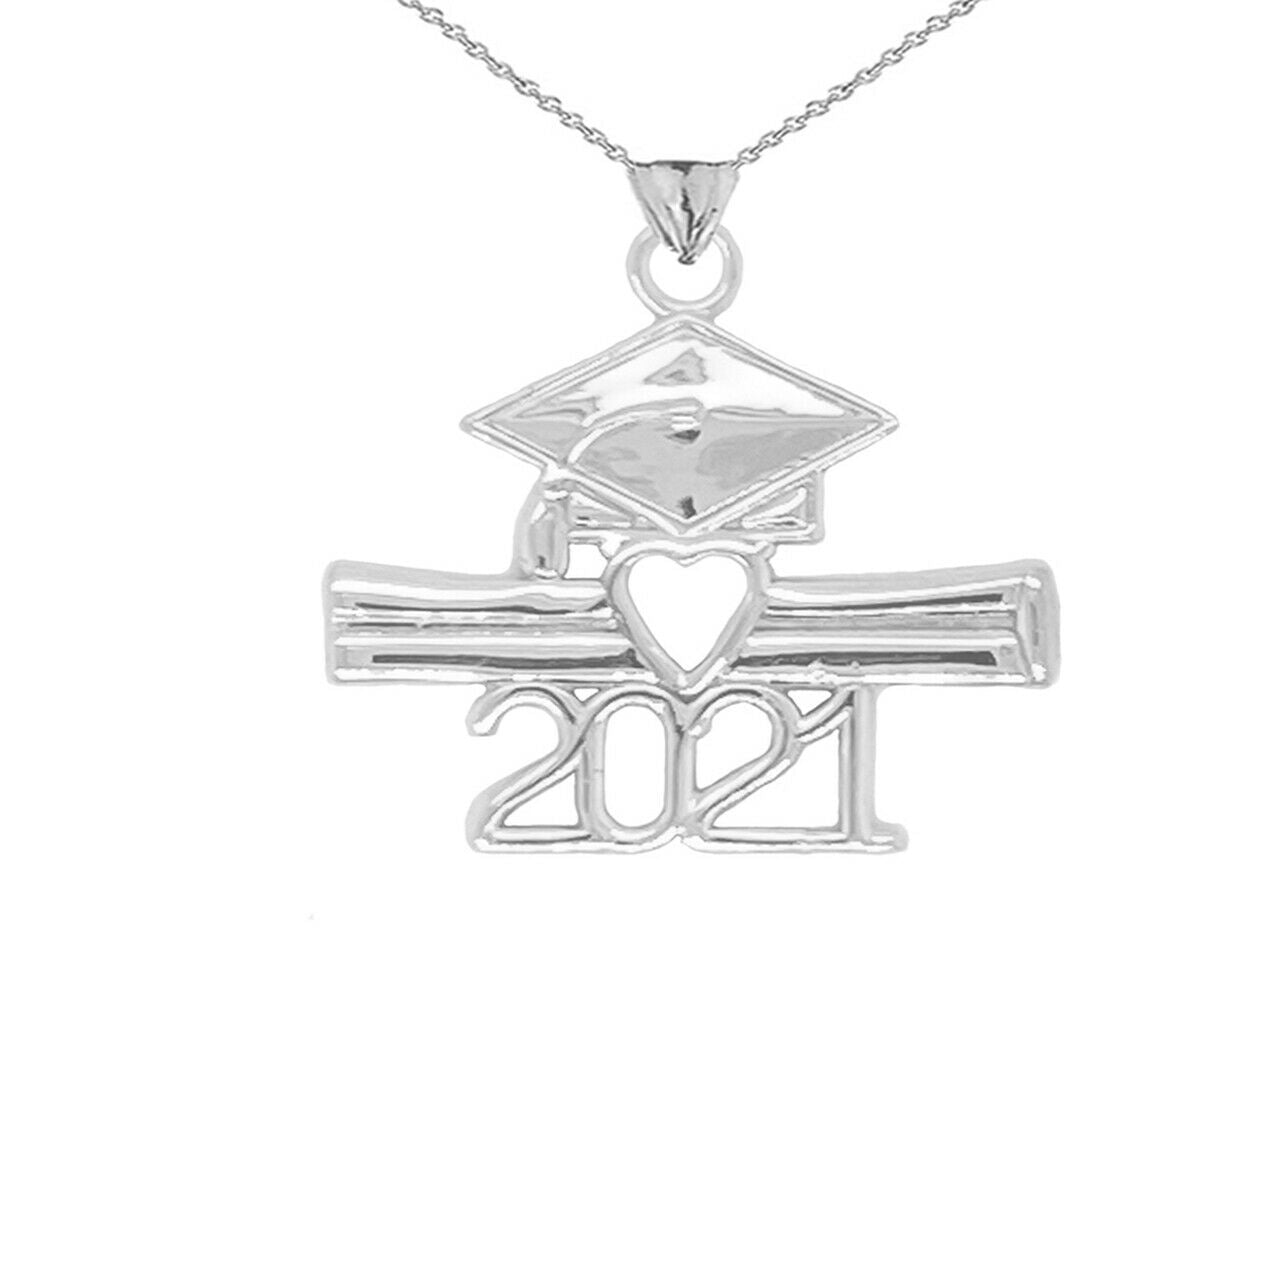 925 Sterling Silver Class of 2021 Graduation Diploma Cap Heart Pendant Necklace